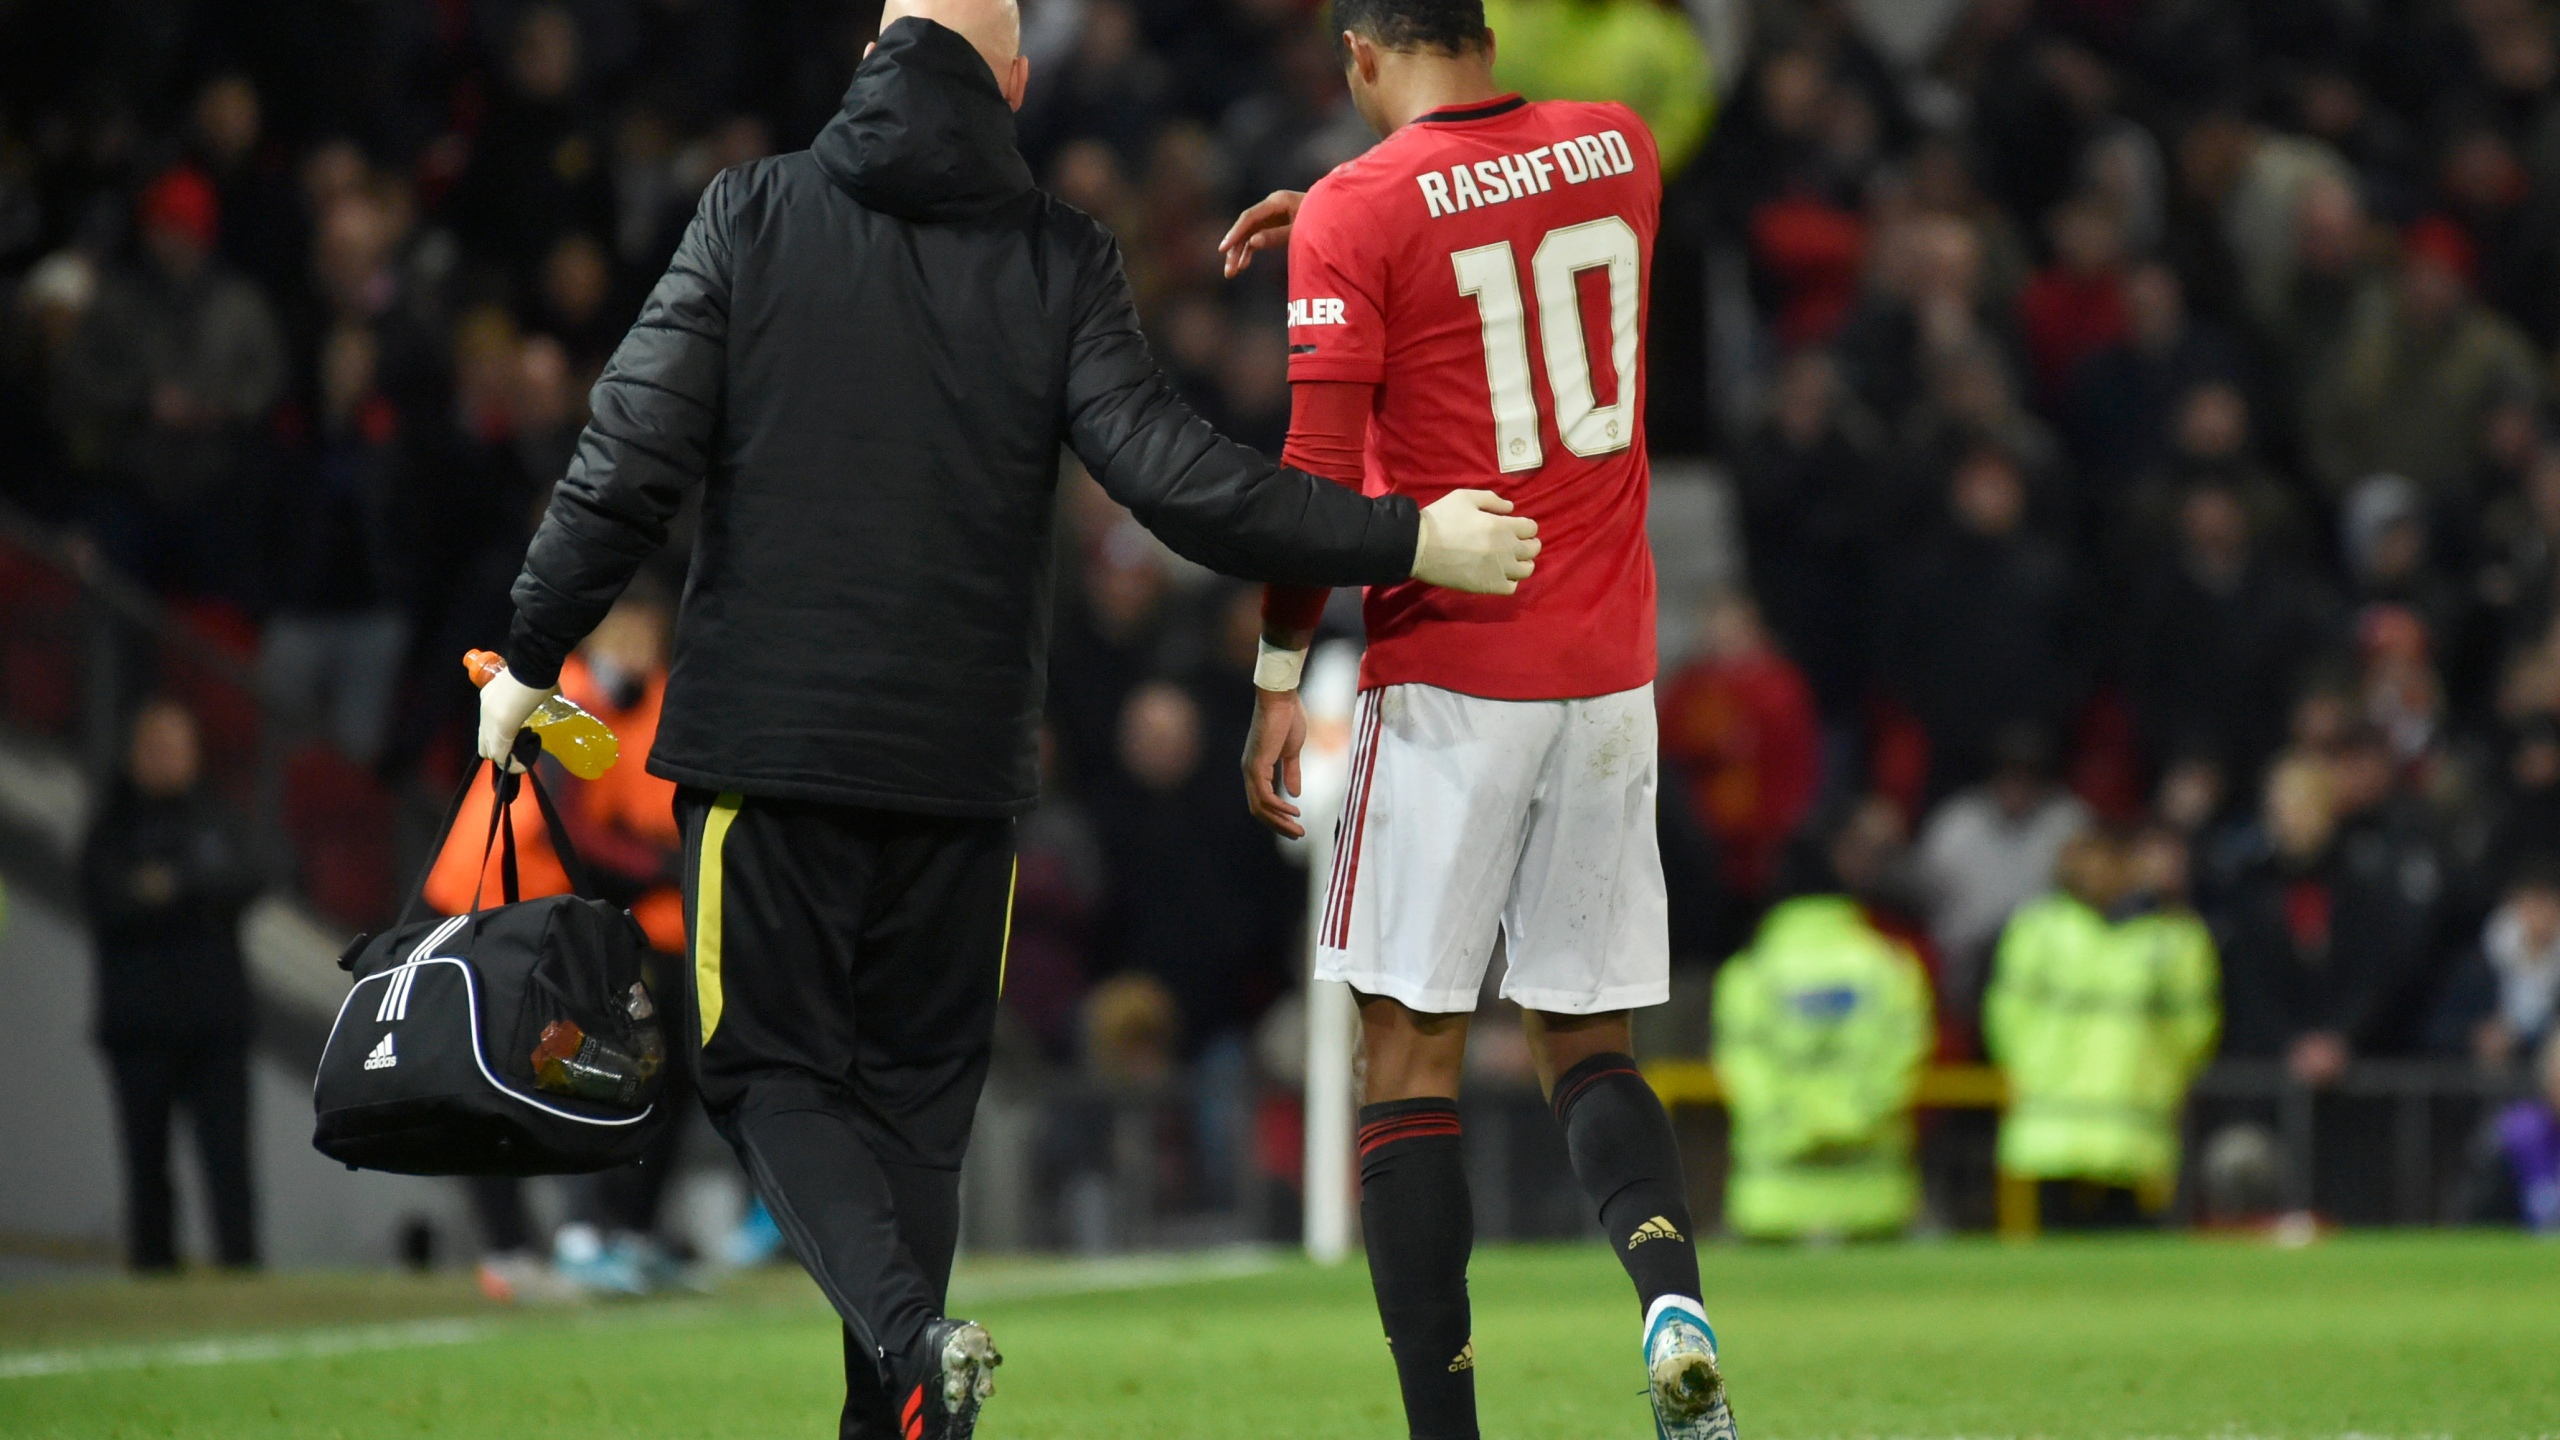 Man United Set To Be Without Marcus Rashford For Weeks Wkrg News 5